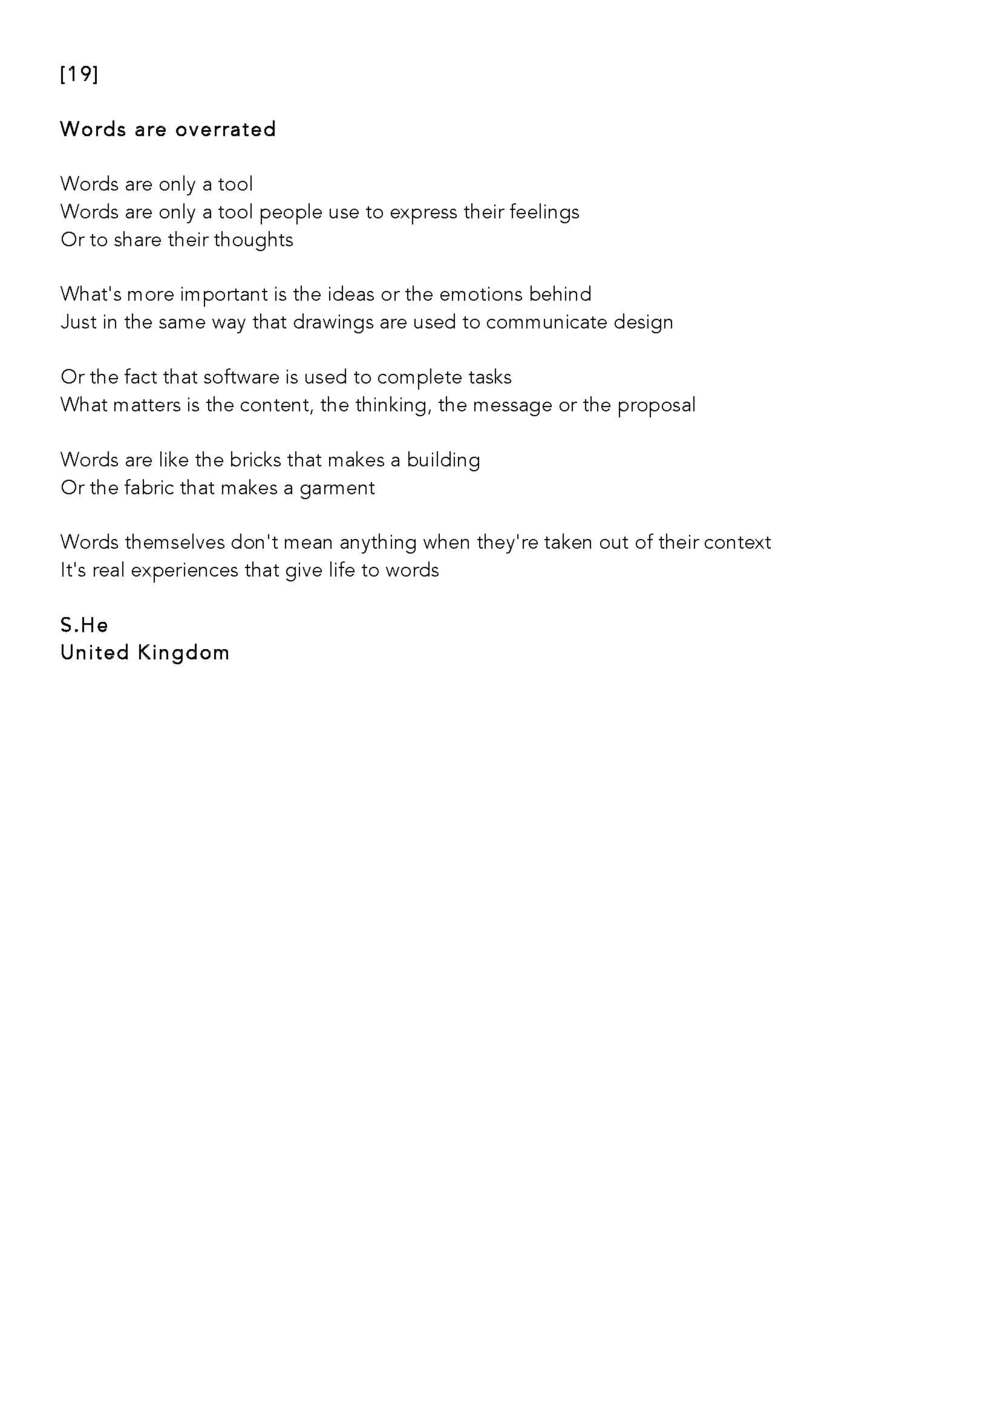 Poetry Collection - Everyone can Poetry _ For 22 June 2014_Page_19.jpg